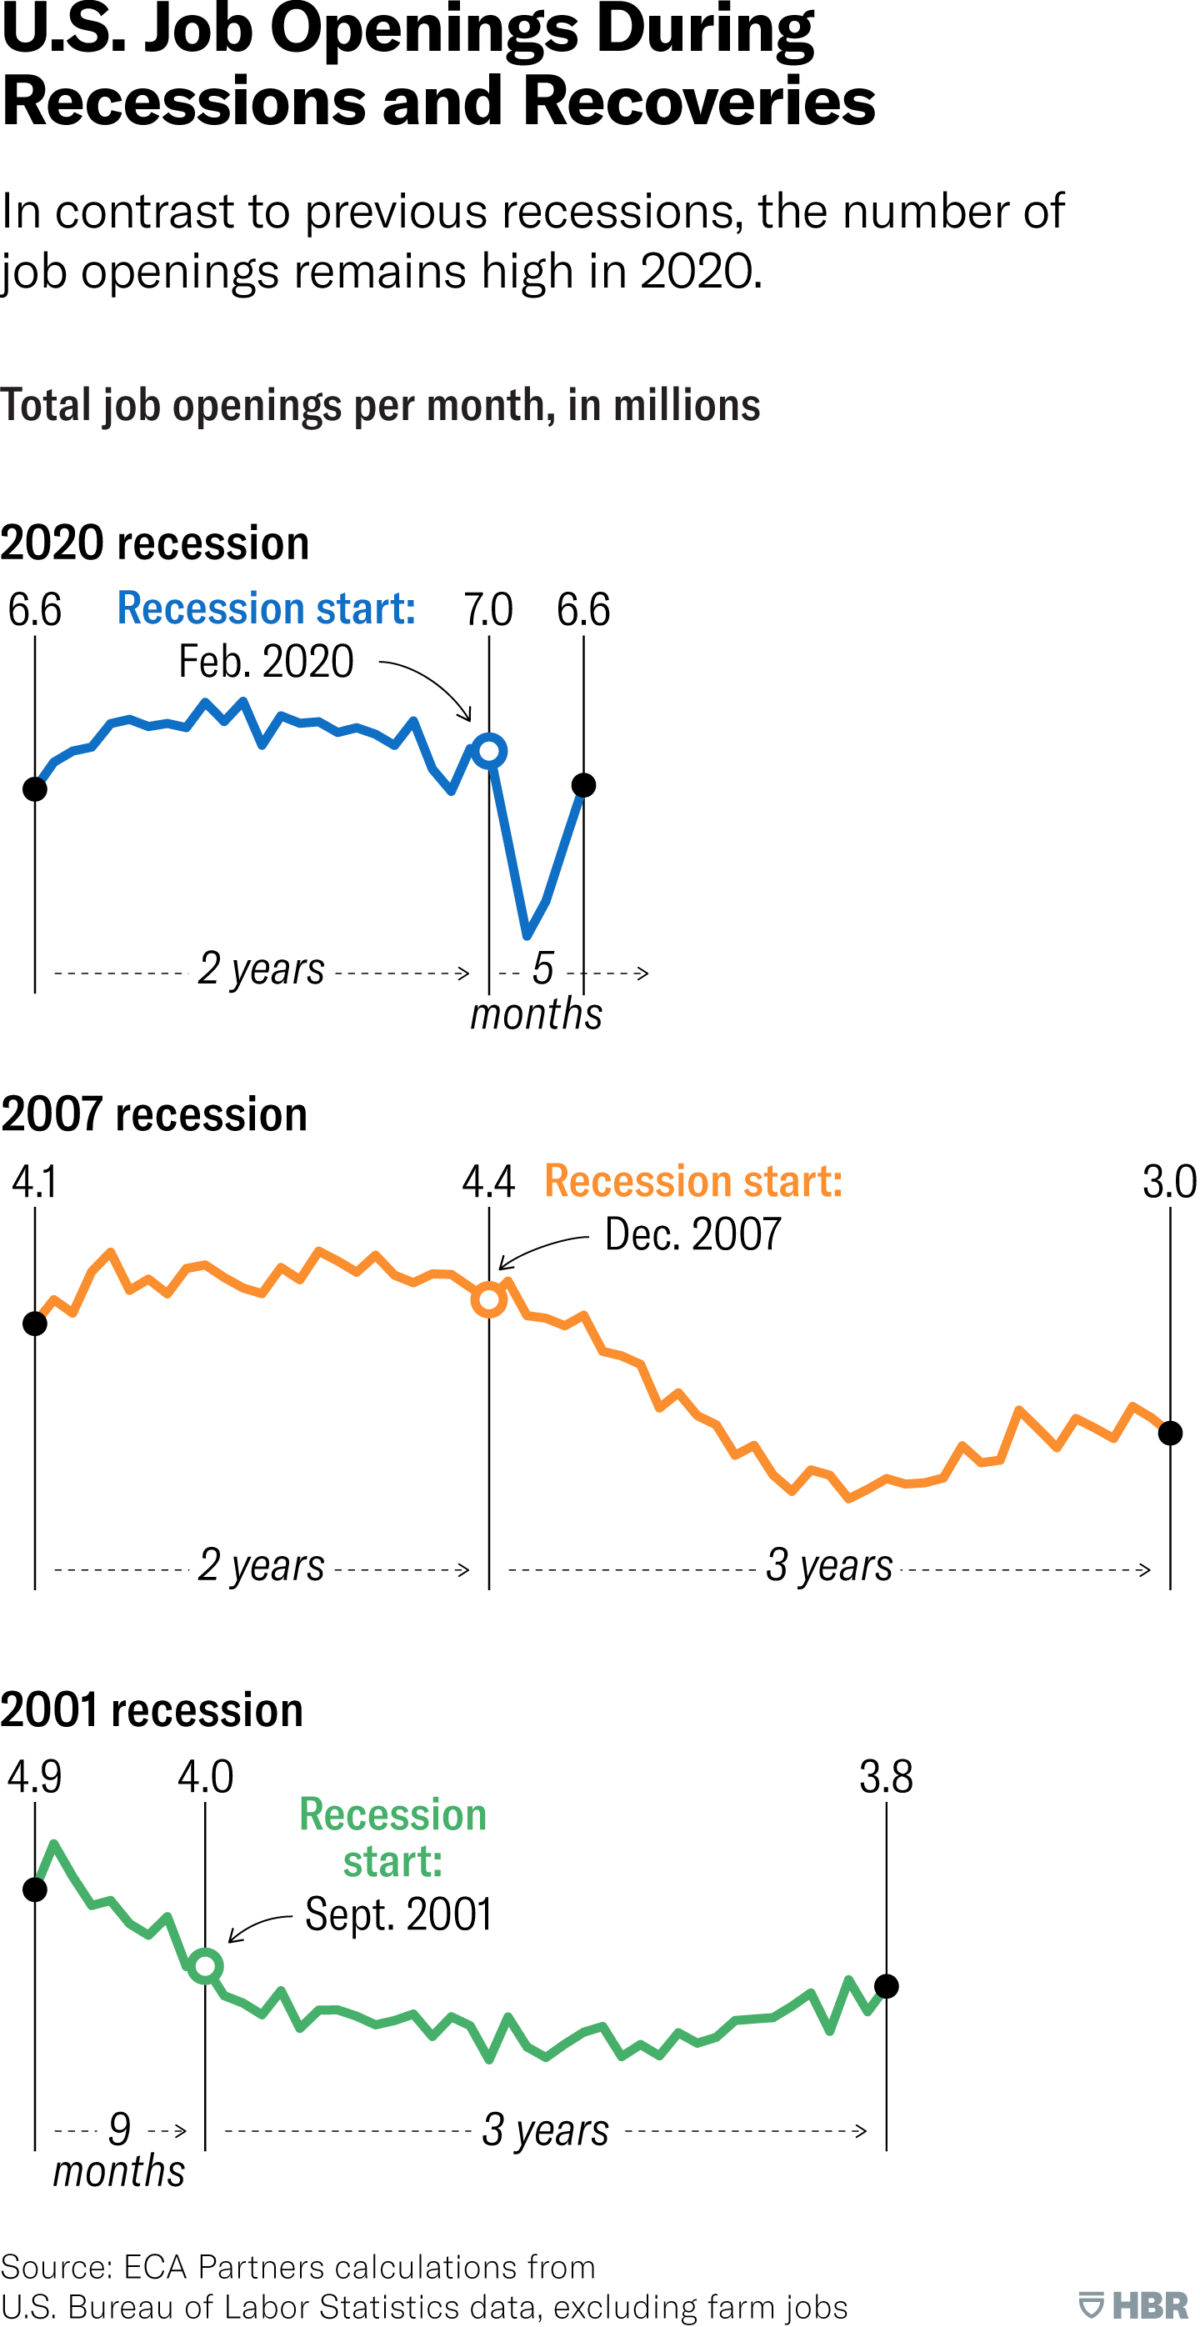 US job openings during recessions and recoveries